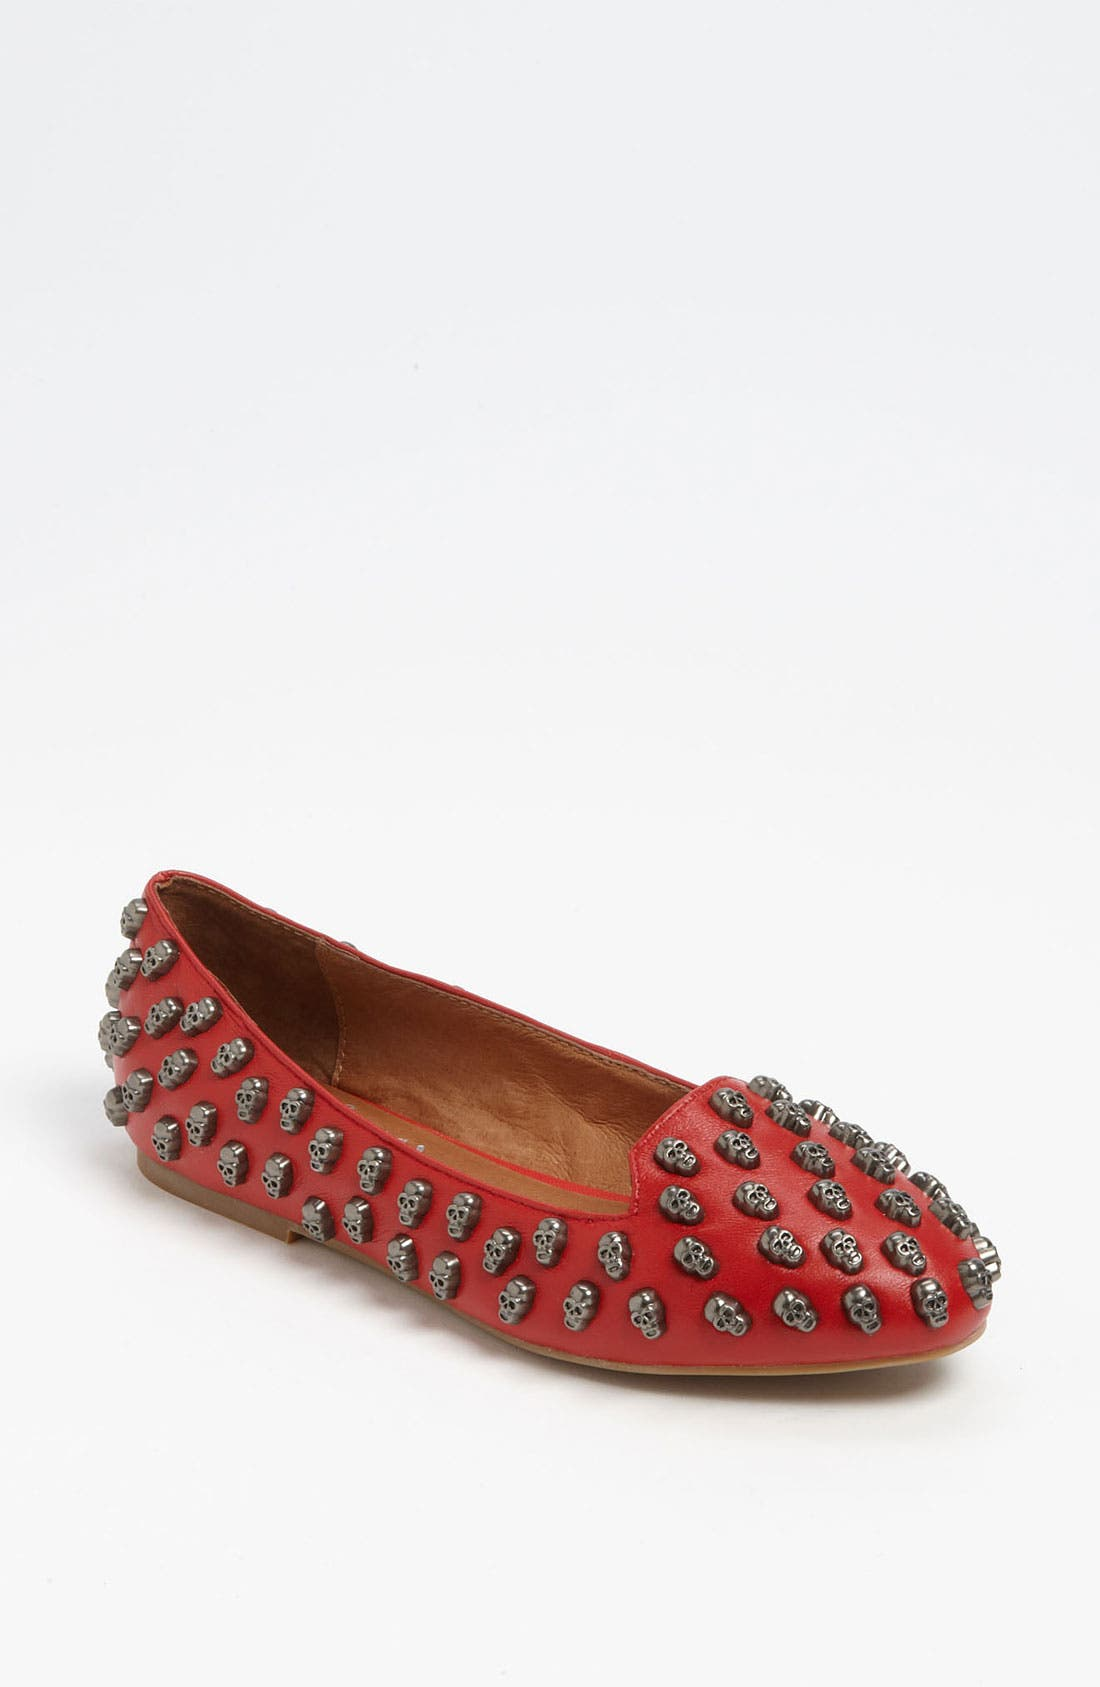 Alternate Image 1 Selected - Jeffrey Campbell 'Skulltini' Flat